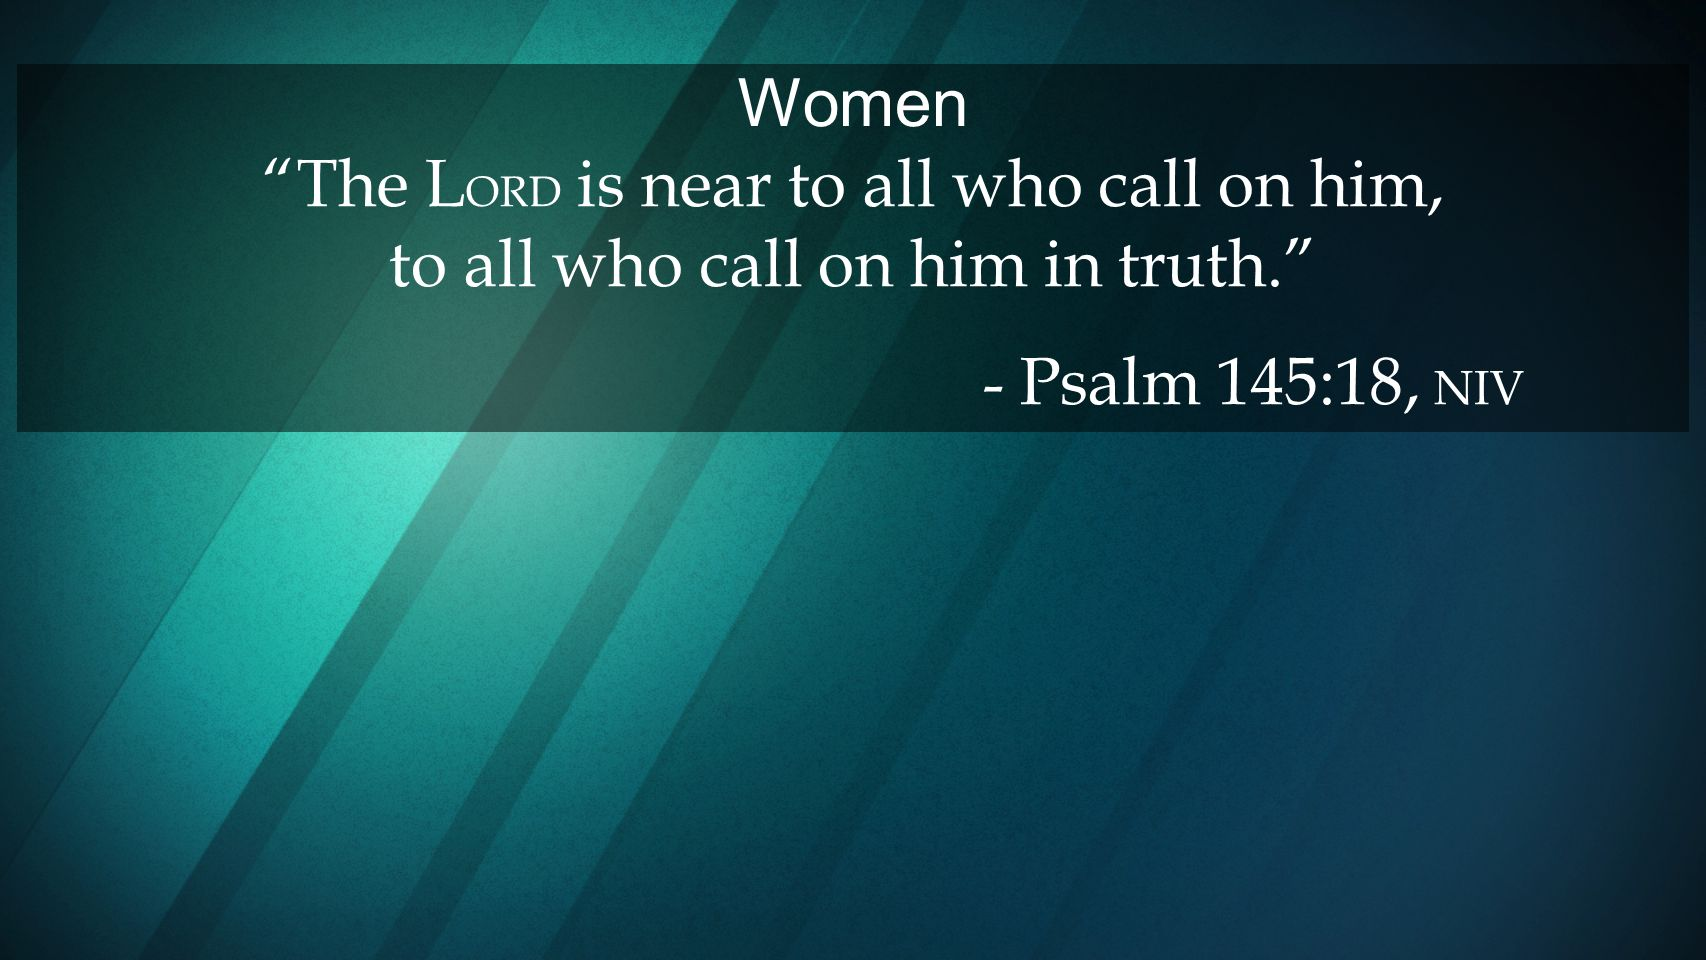 Women The LORD is near to all who call on him, to all who call on him in truth.